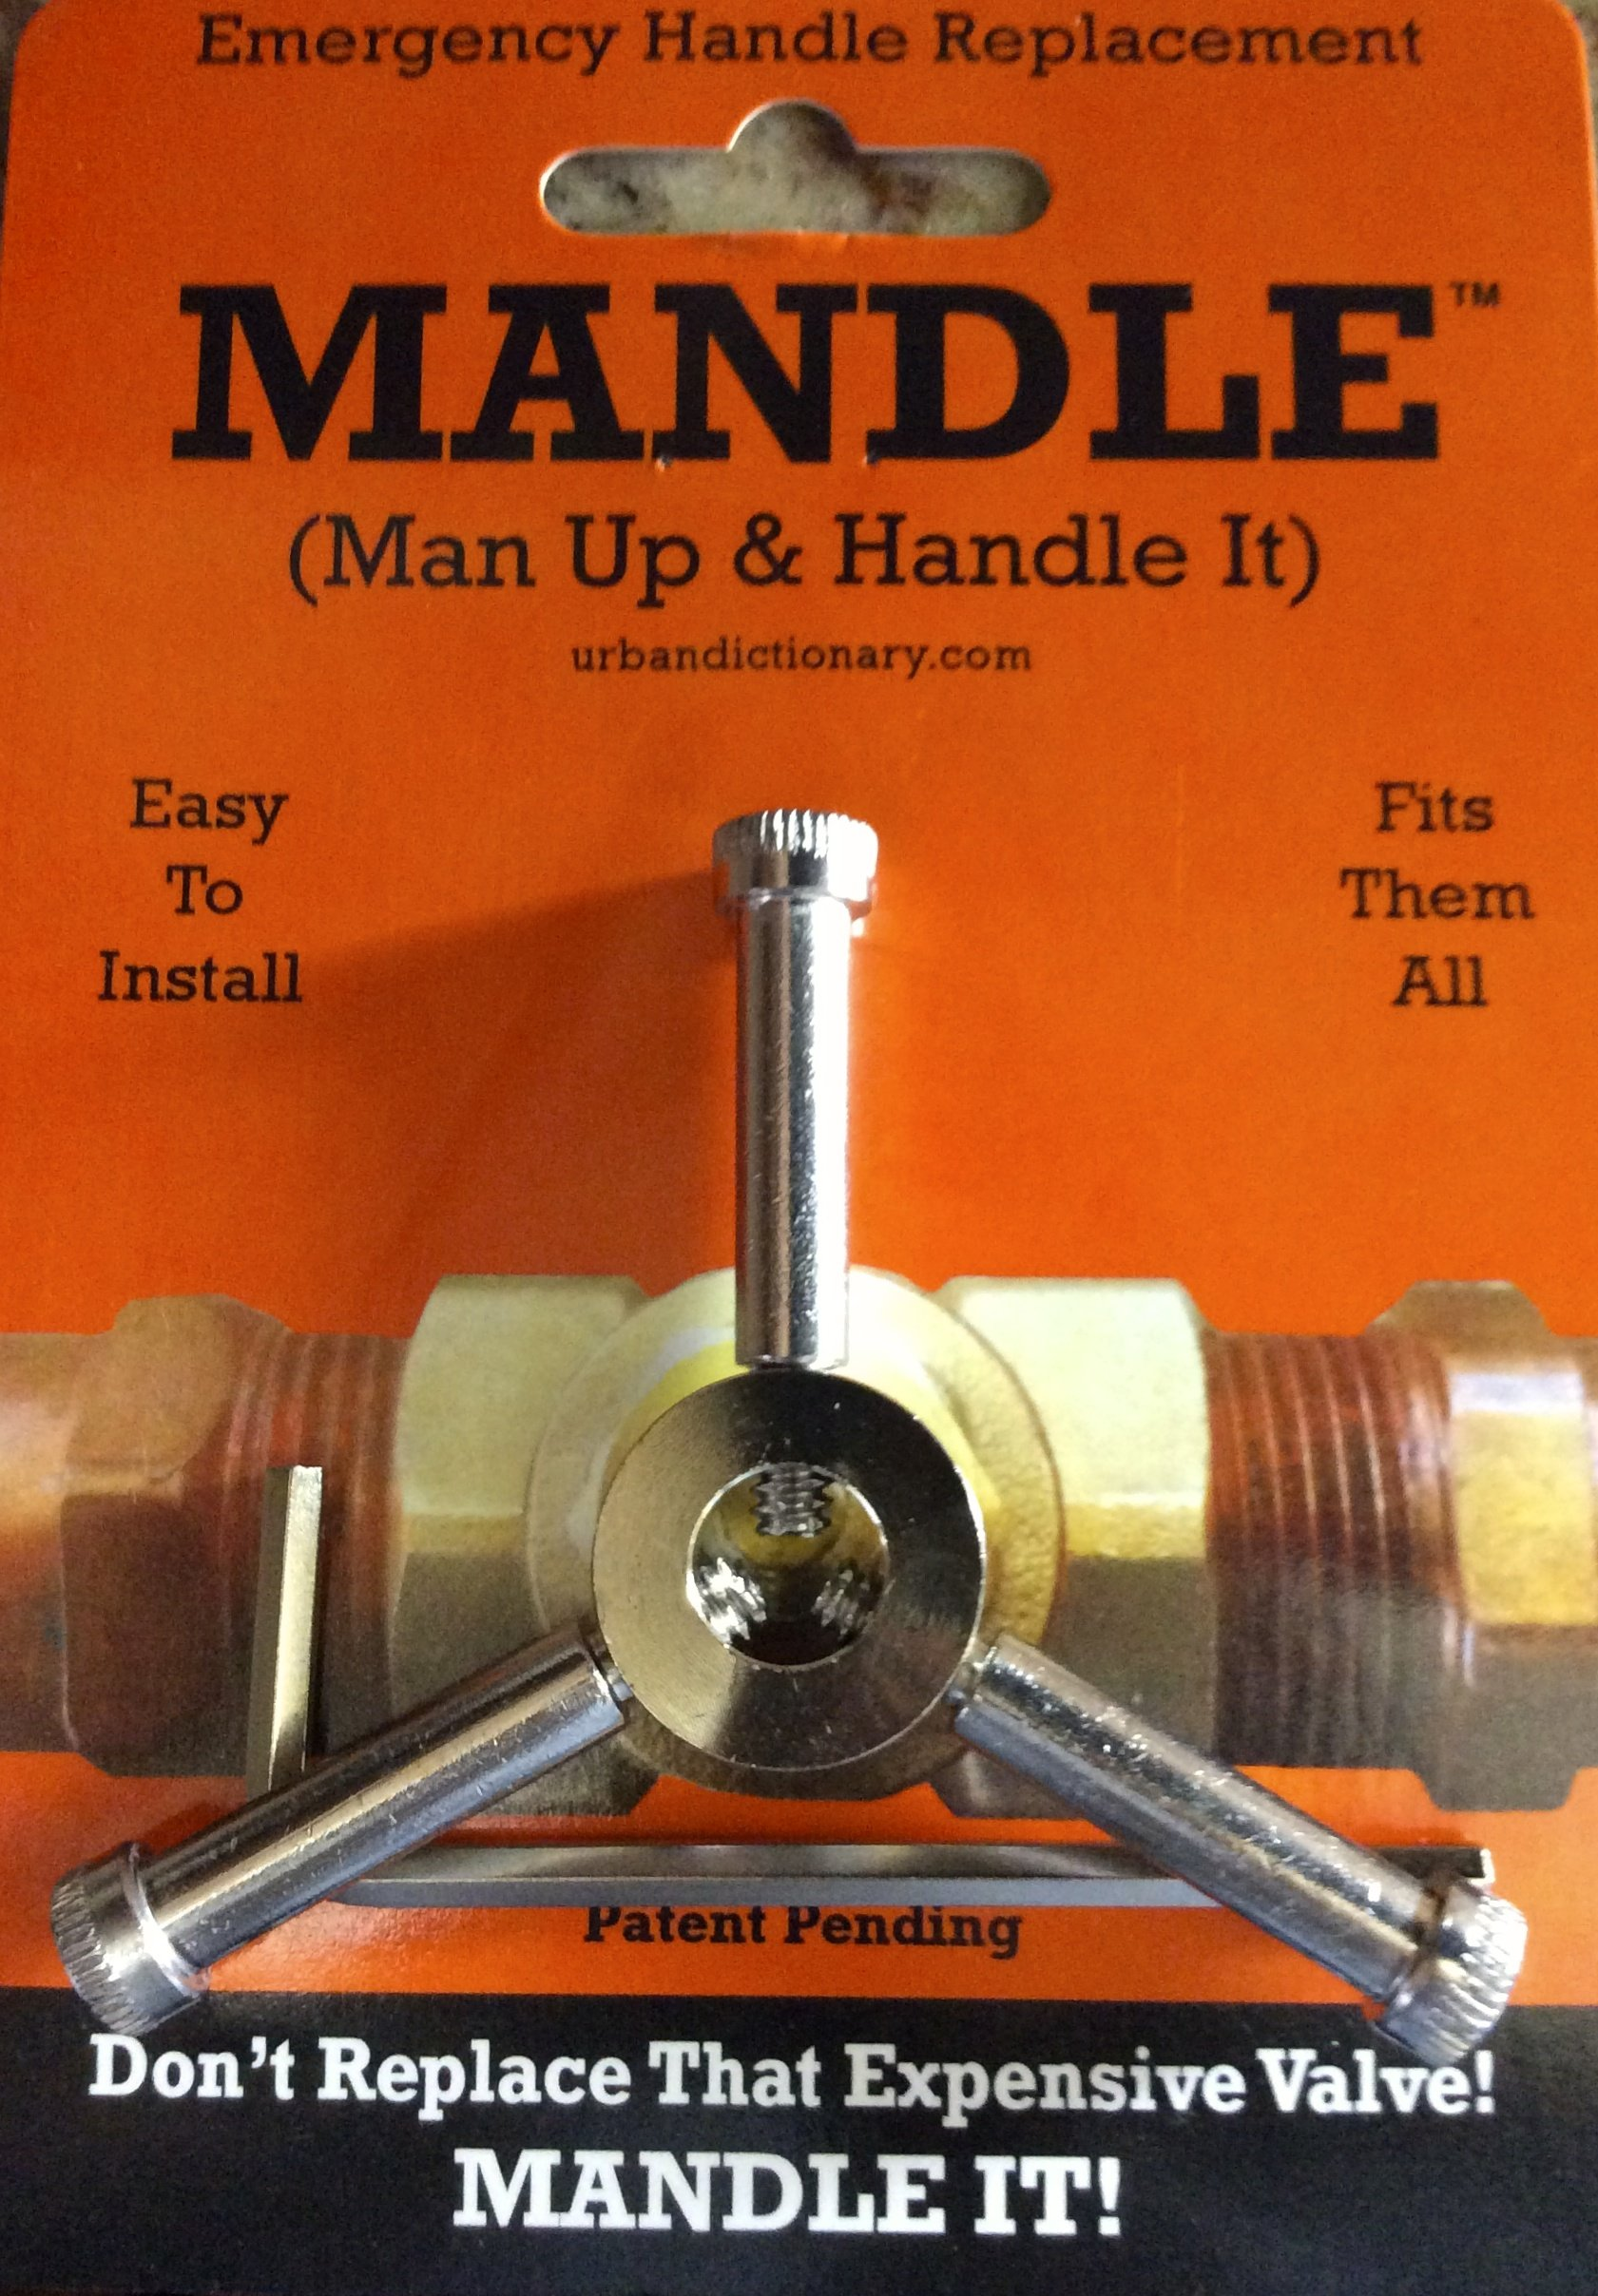 Universal Plumbing Repair Handle- Emergency Valve Handle Replacement-One Handle FITS ALL VALVES!''THE MANDLE''